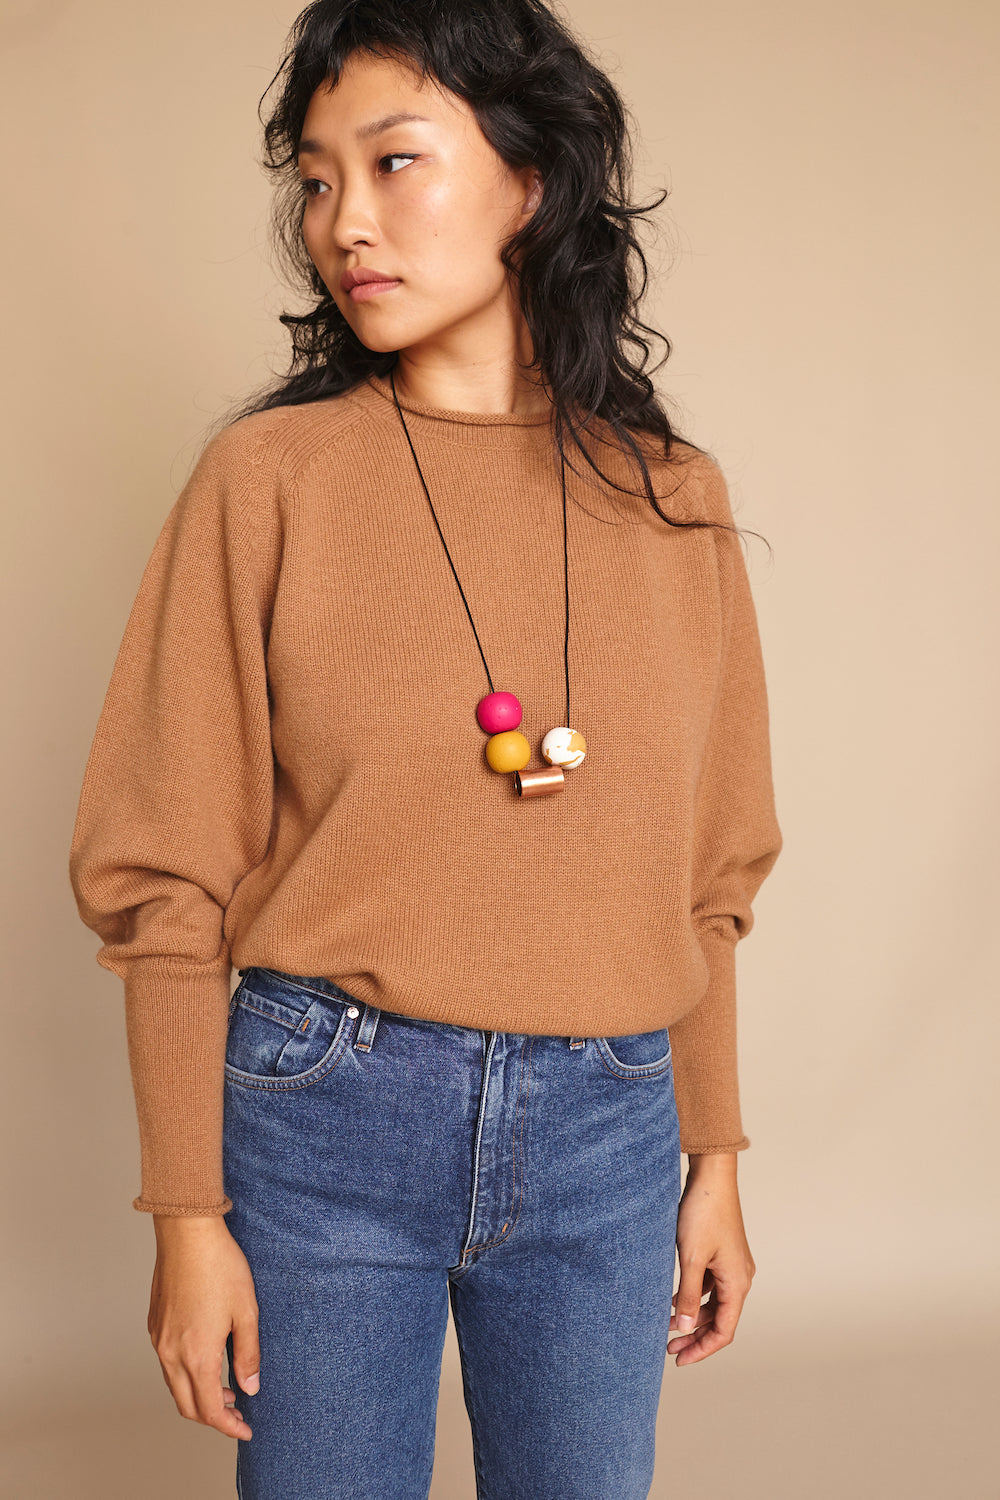 The Andy Necklace in Mustard Fuchsia